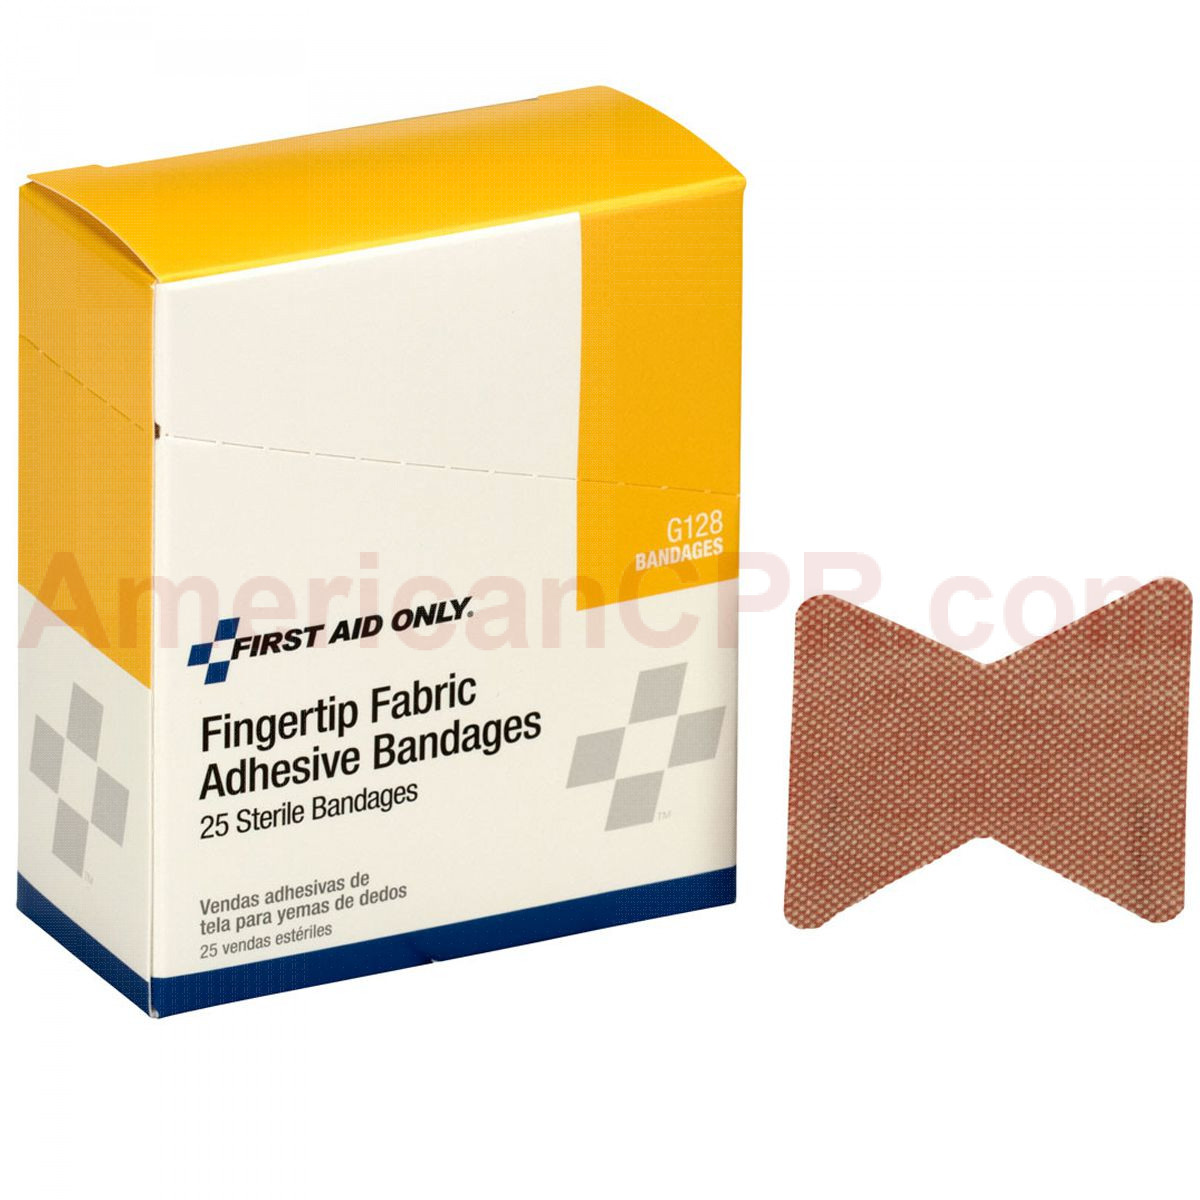 Fingertip Bandage, Fabric - 25 Per Box - First Aid Only